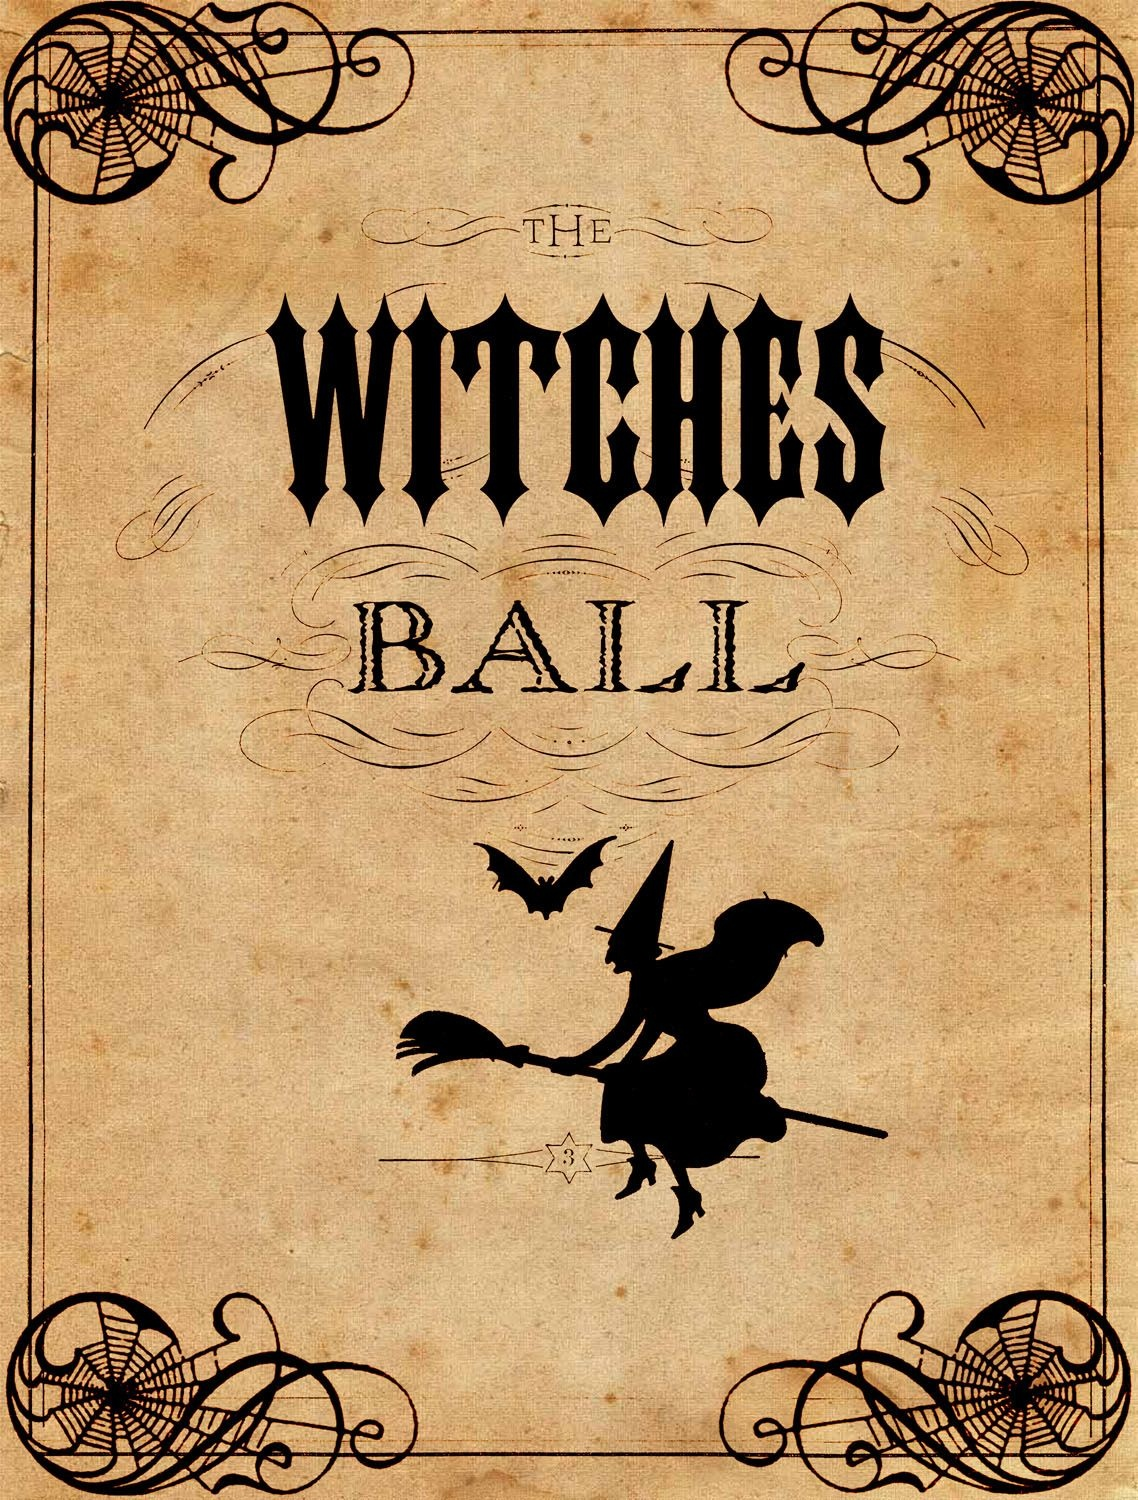 Vintage Halloween Printable - The Witches Ball | Halloween - Free Vintage Halloween Printables